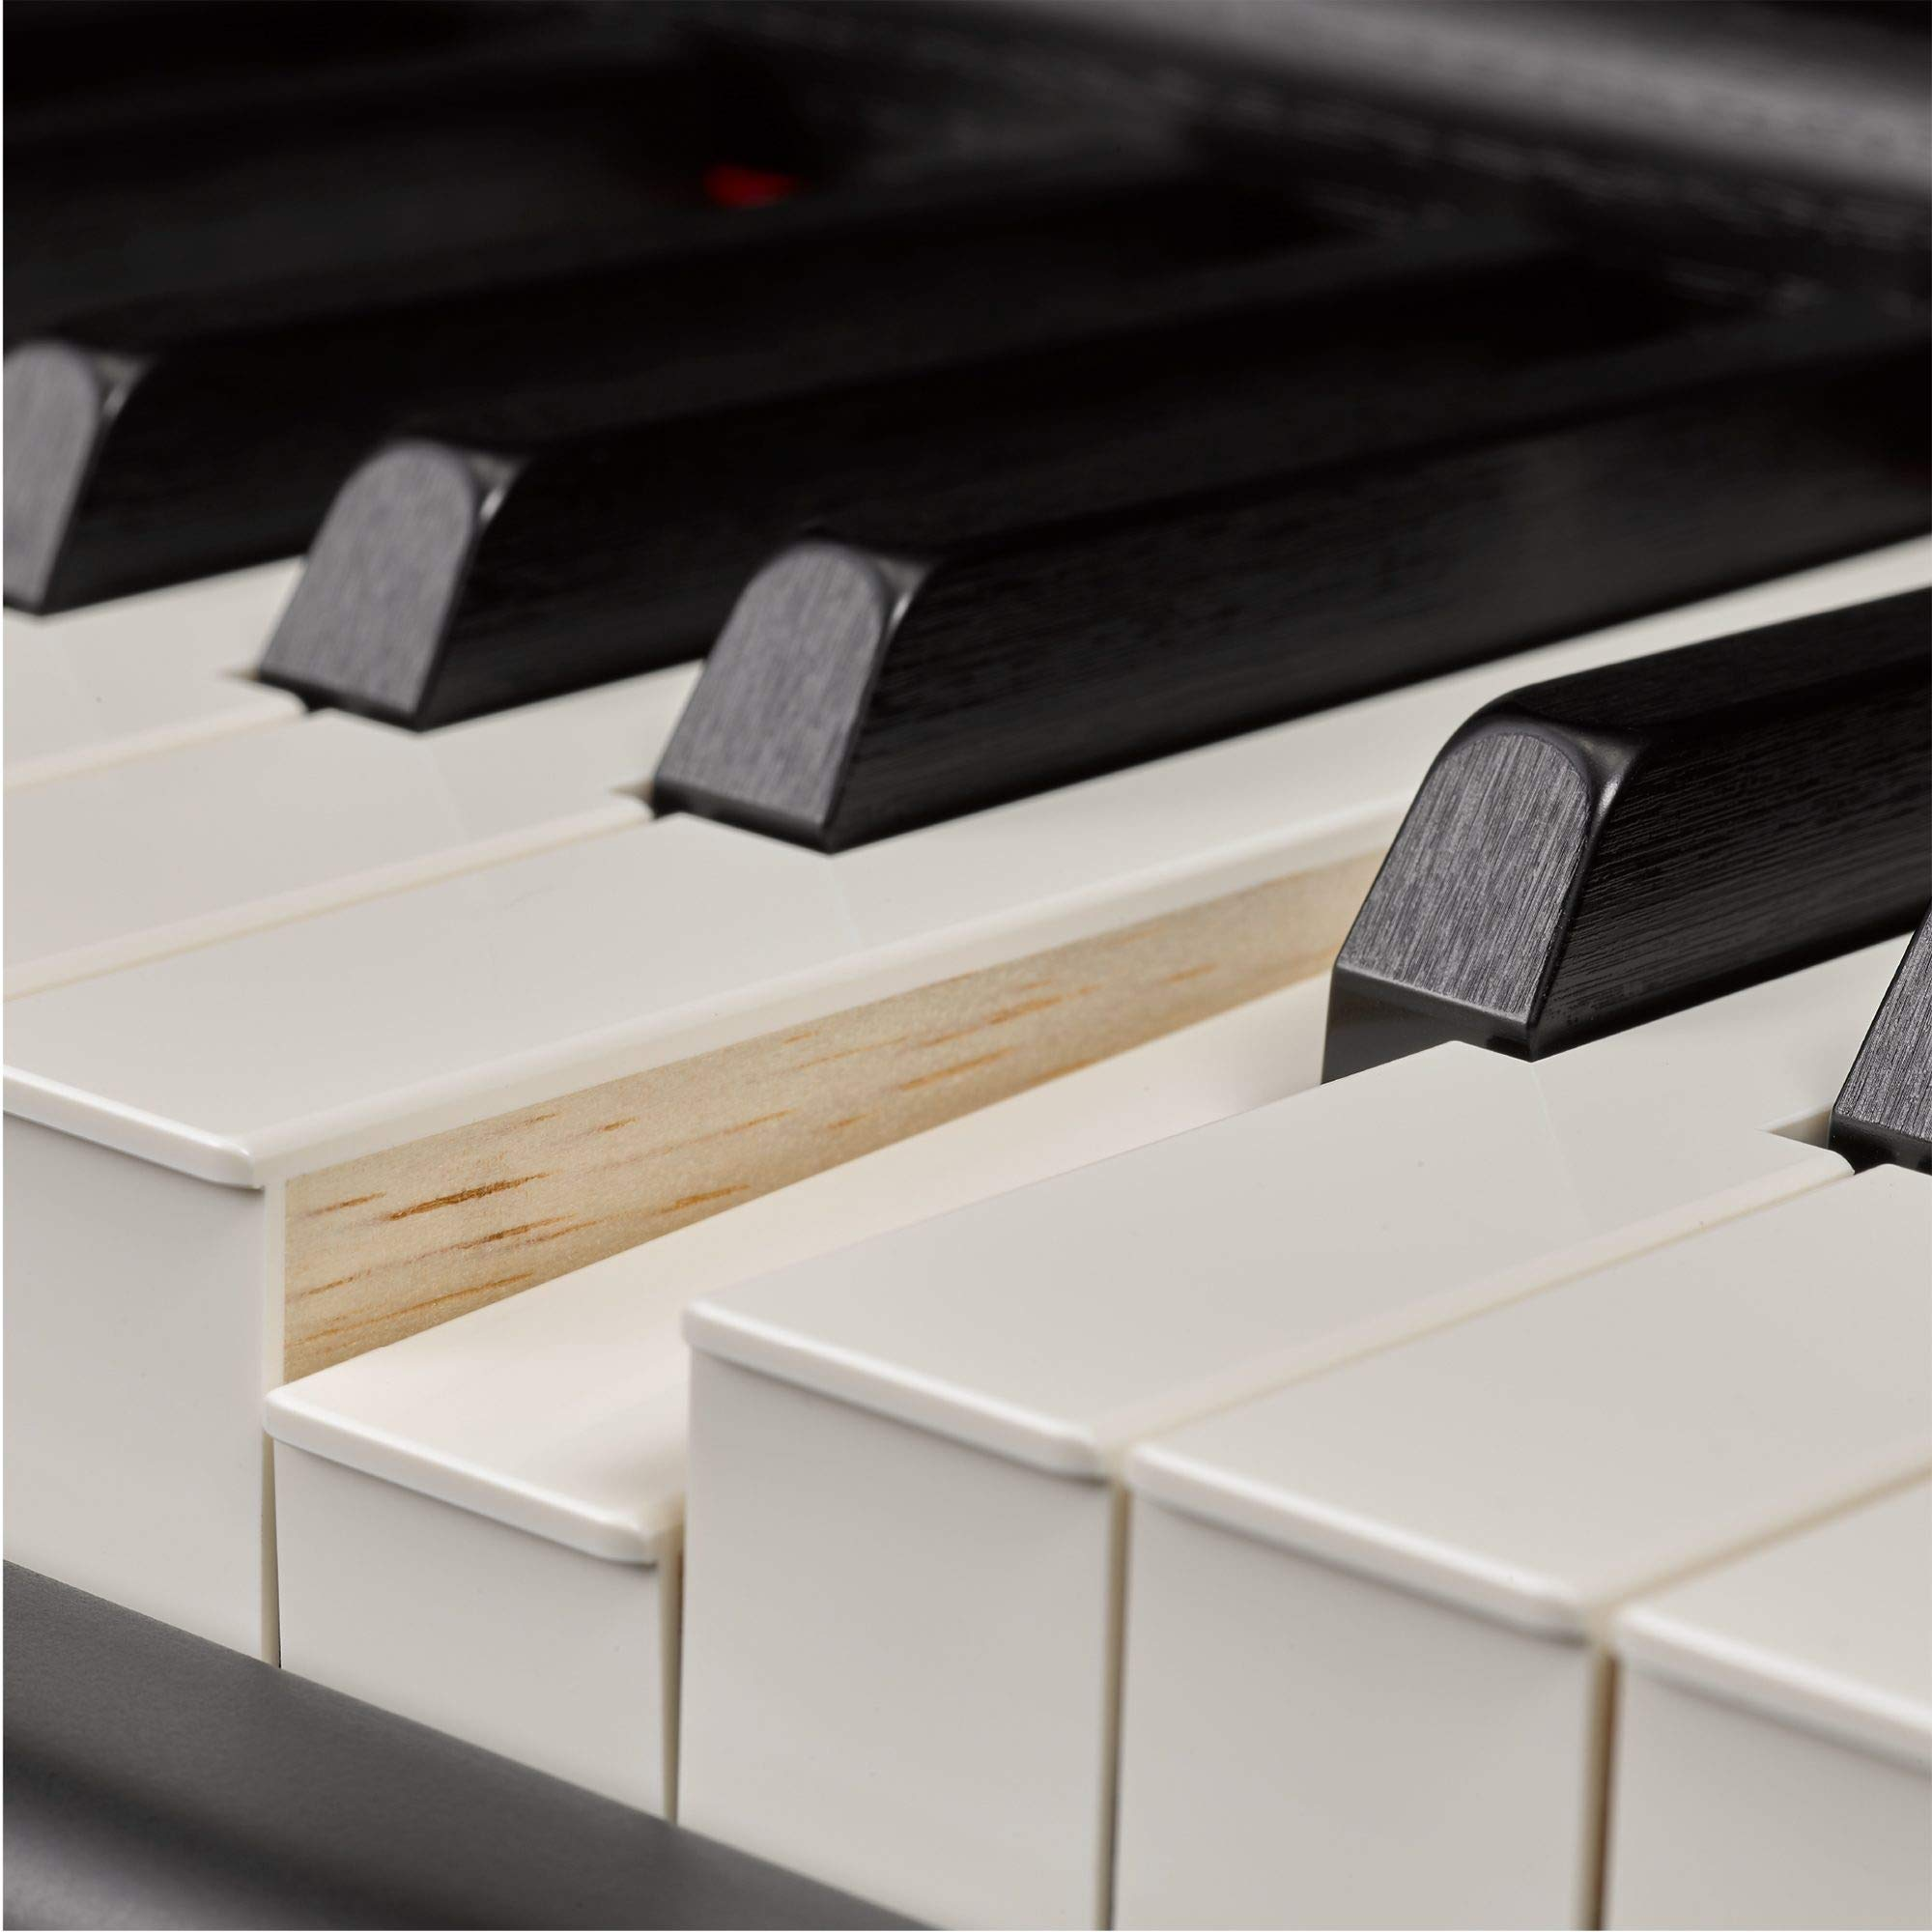 What is the Best Digital Piano and Keyboard in 2019? See Top